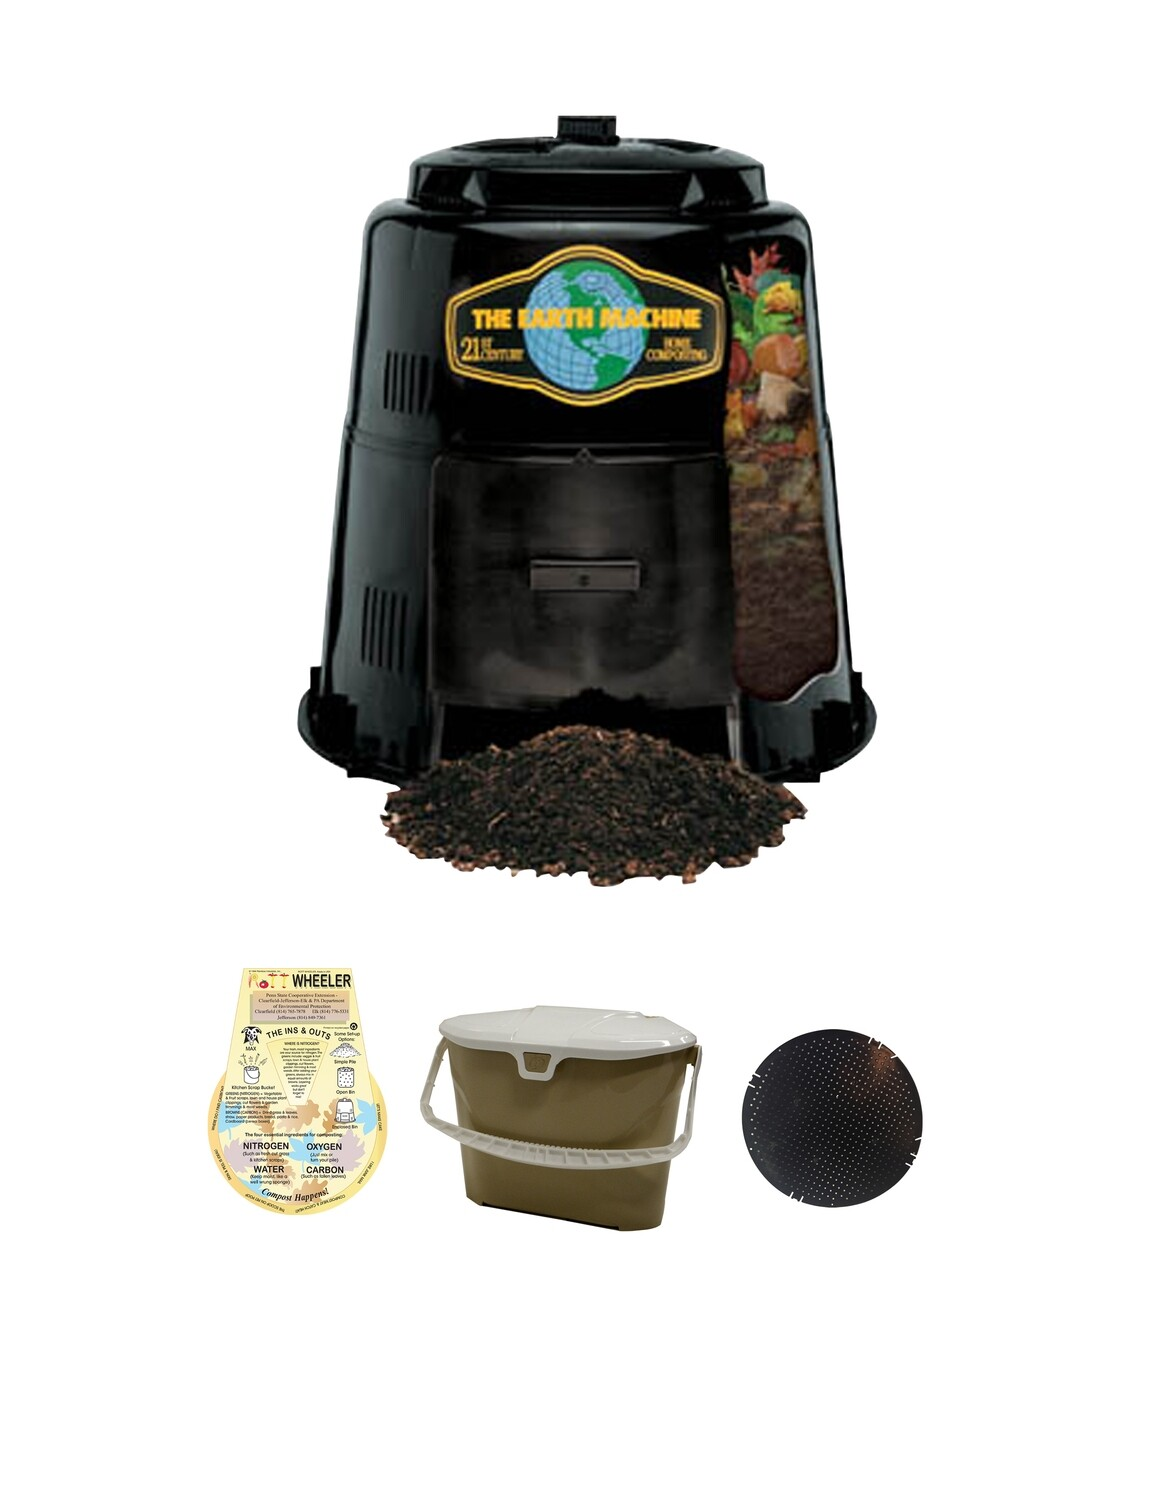 KIT 3: Includes the Earth Machine, Rottwheeler, Kitchen Collector & Rodent Screen